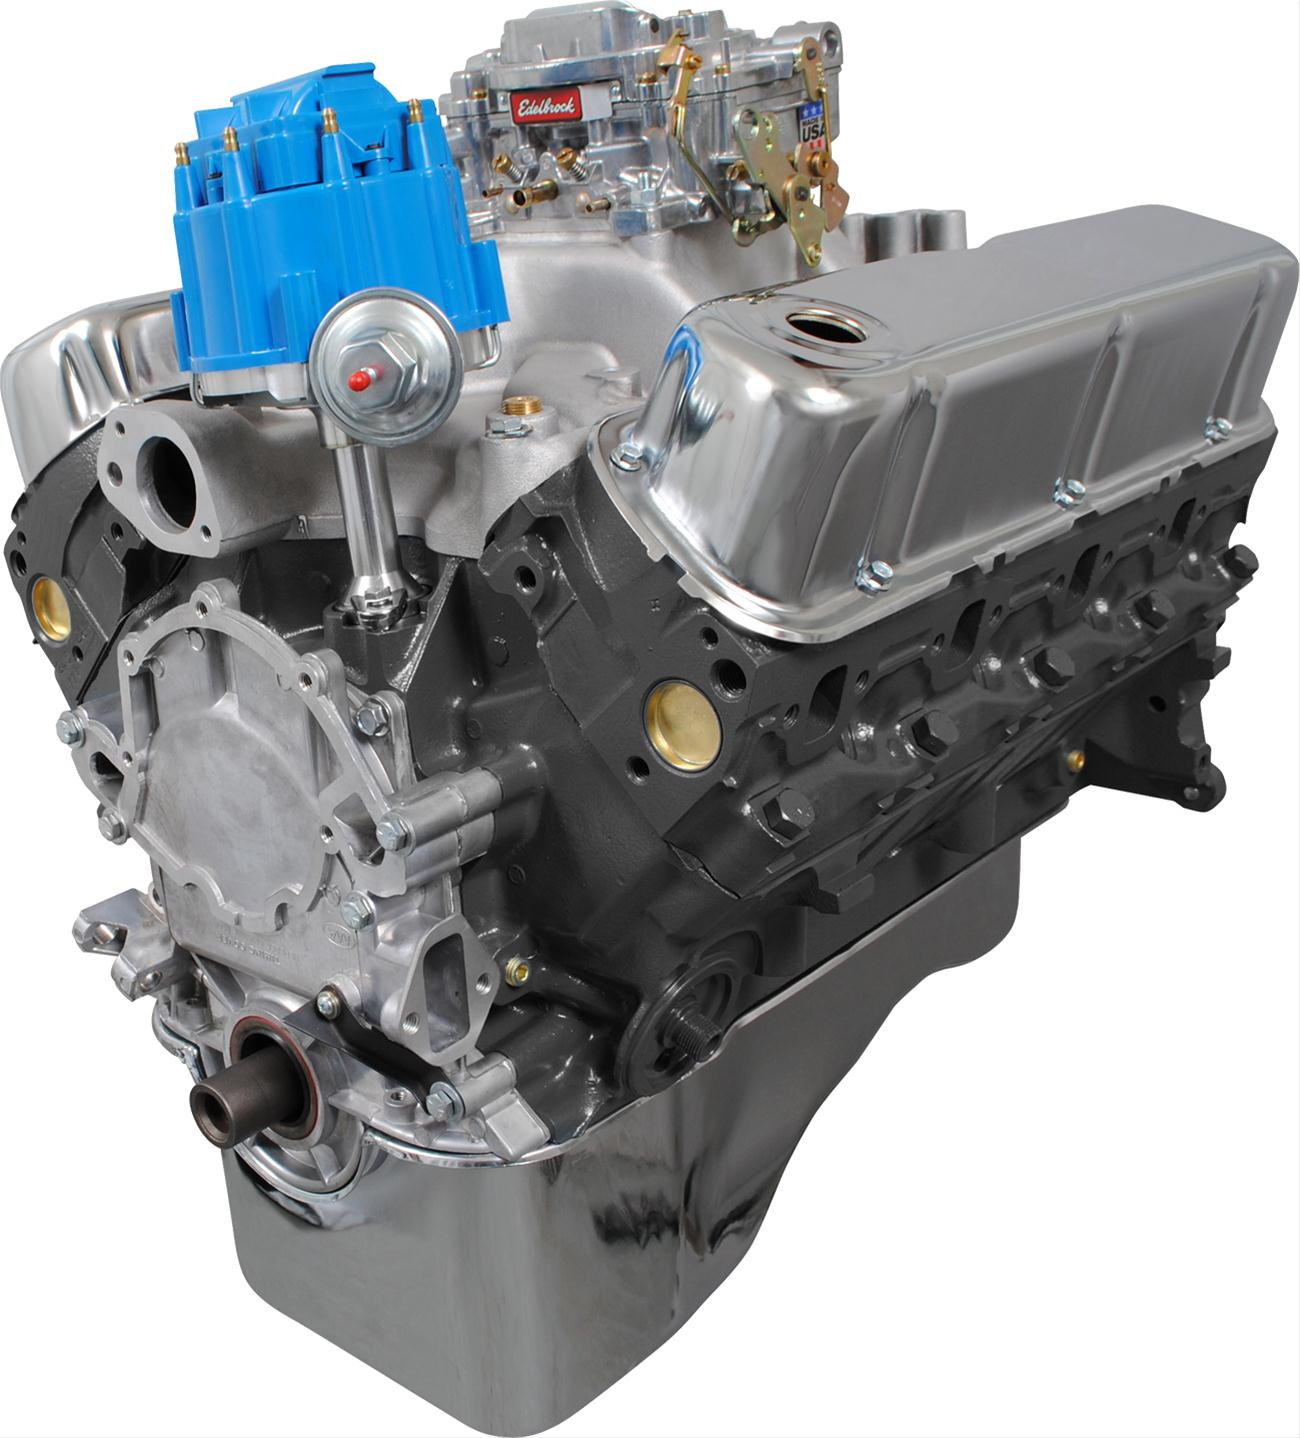 hight resolution of blueprint engines bpf4084ctc free shipping on orders over 99 at summit racing